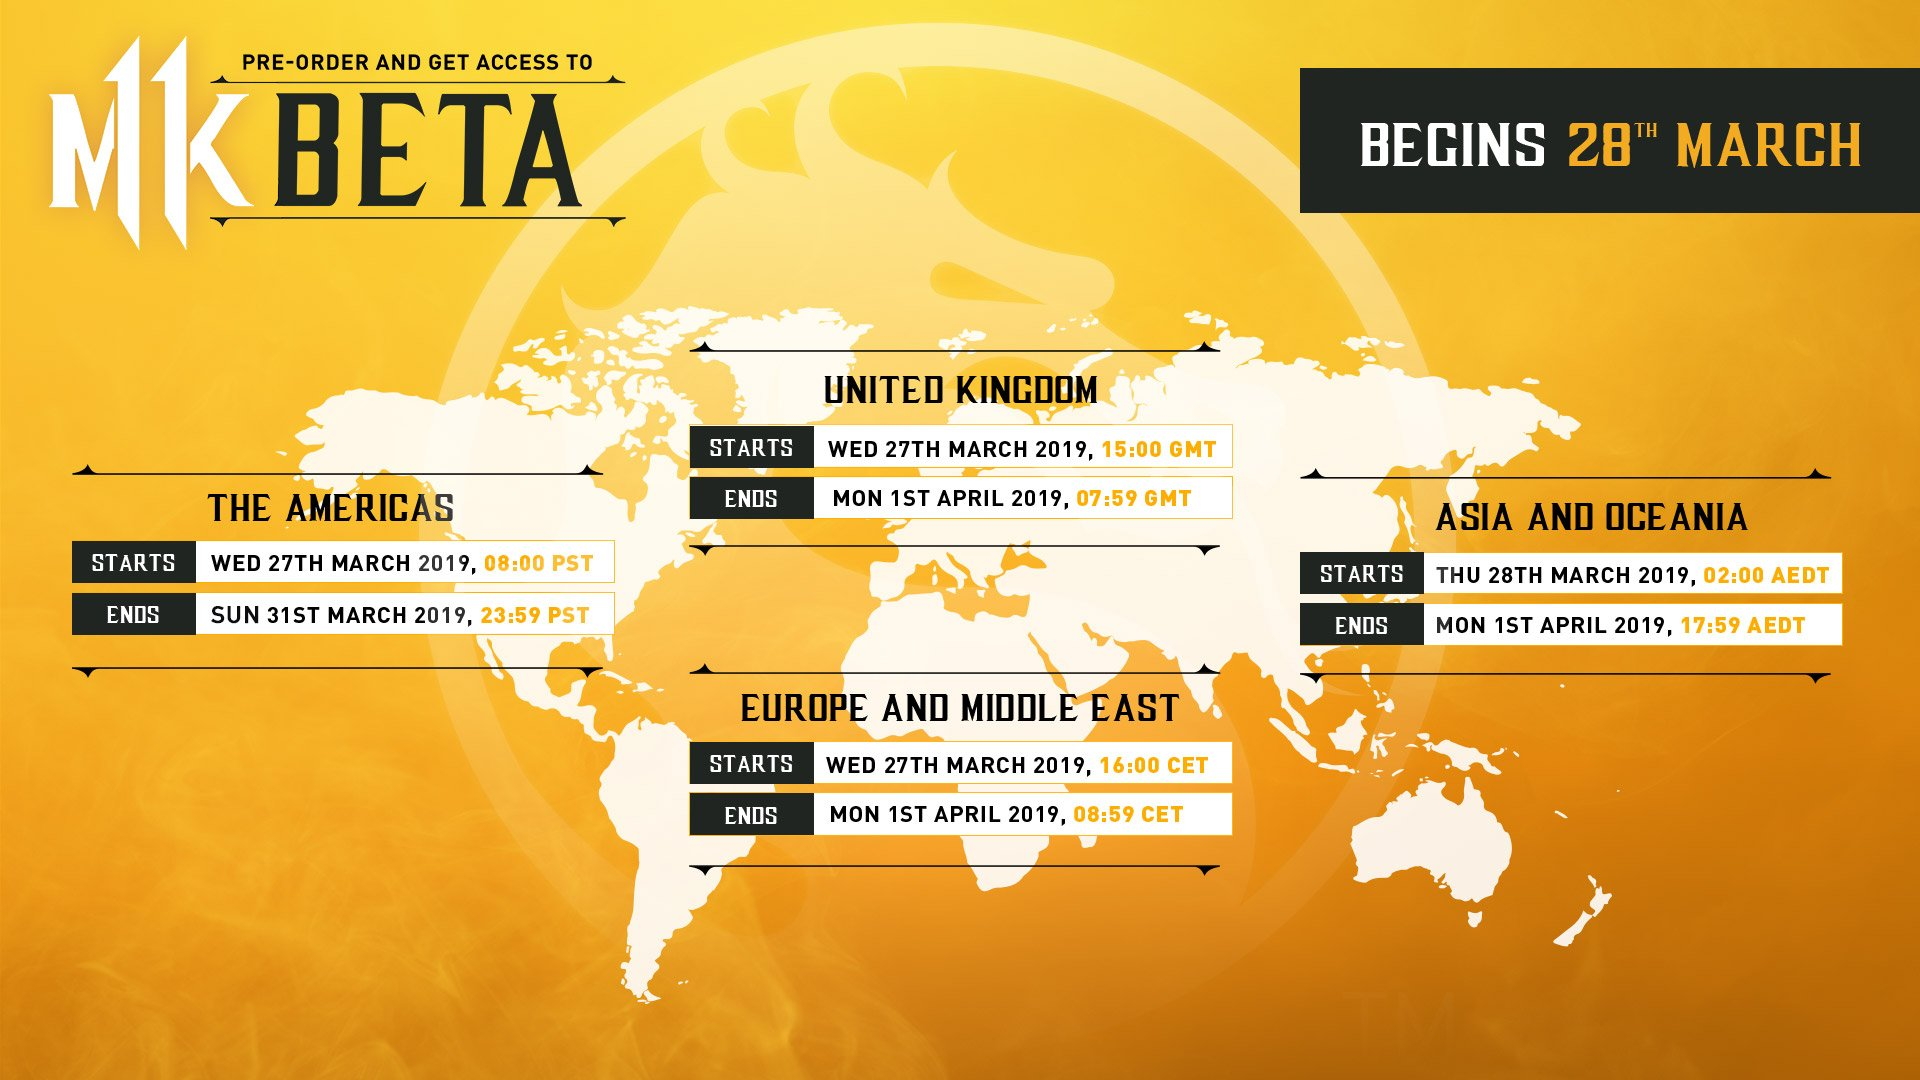 Mortal Kombat beta start and end times - beta infographic